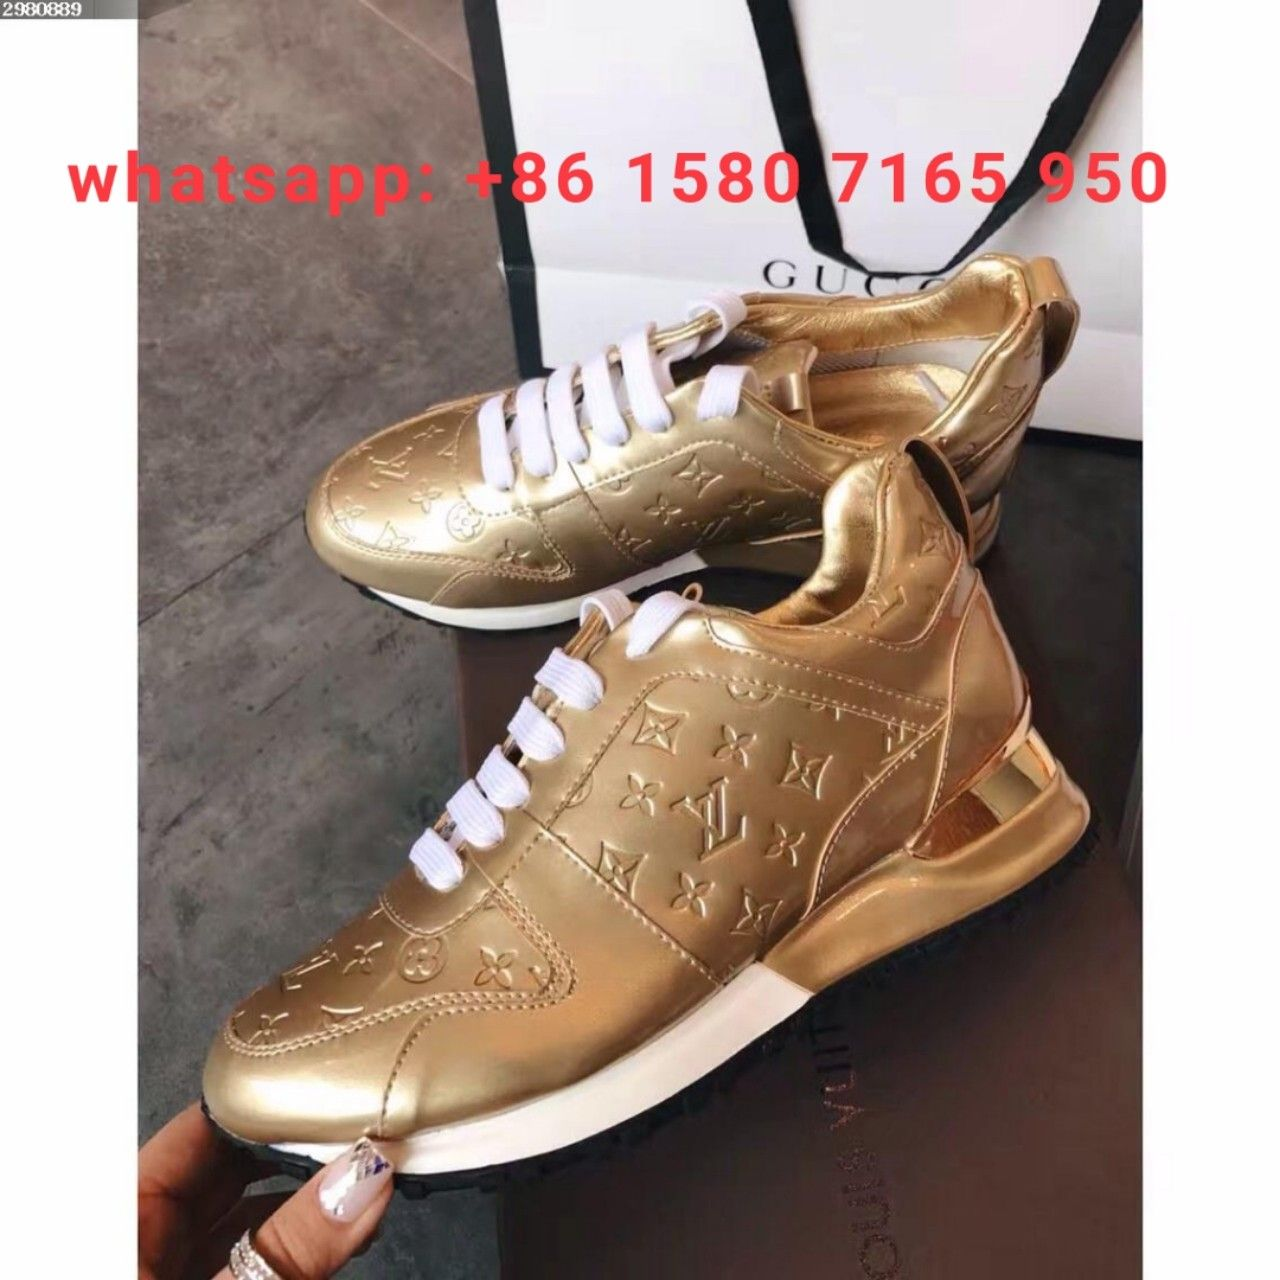 louis vuitton gold sneakers,lv sneakers